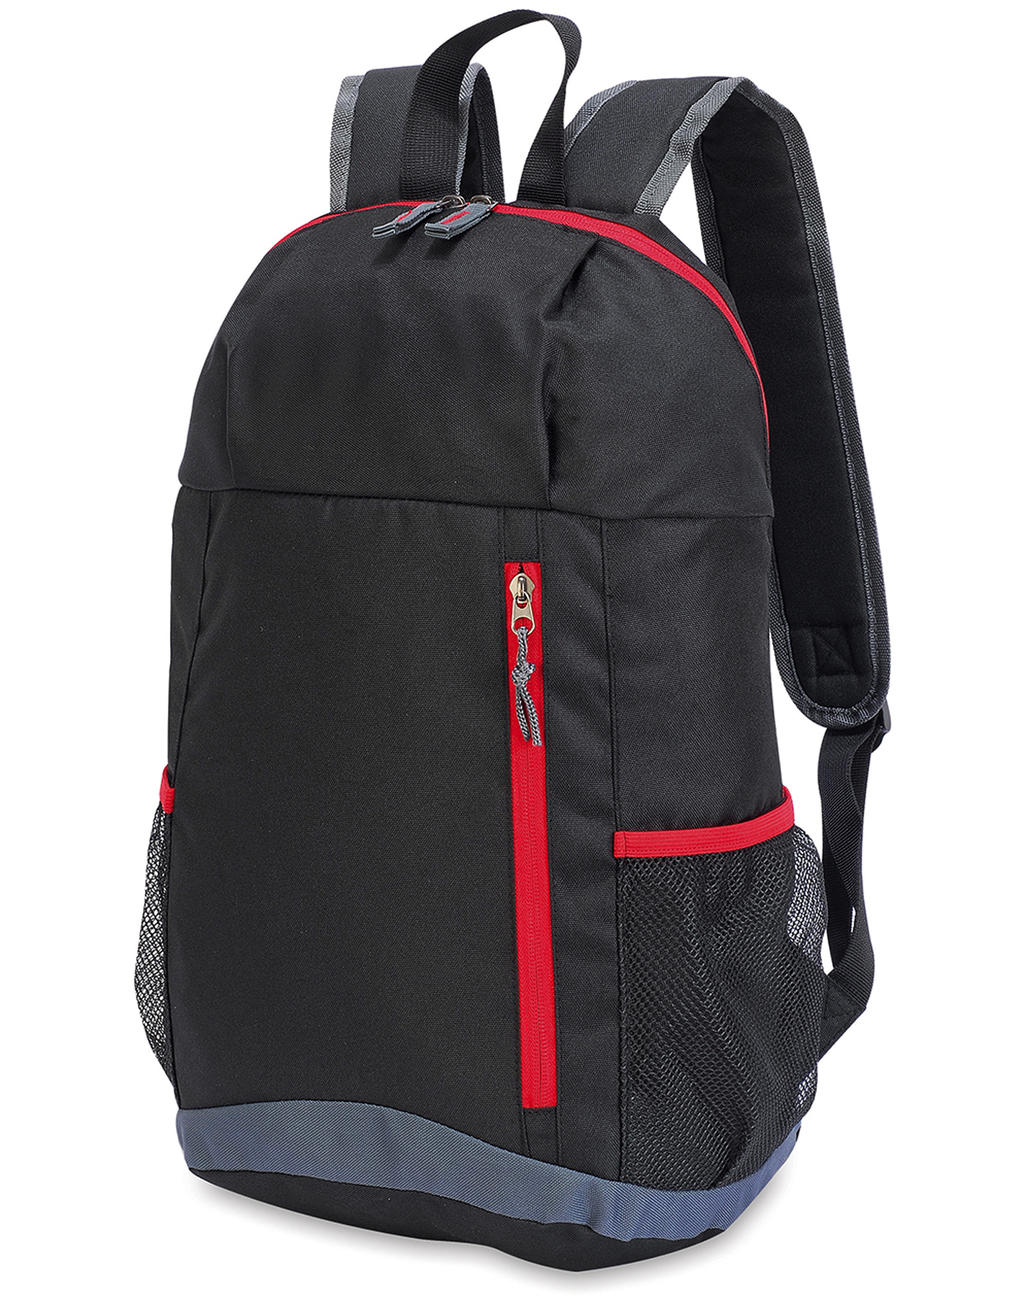 Basic Backpack Black-Red-Dark grey